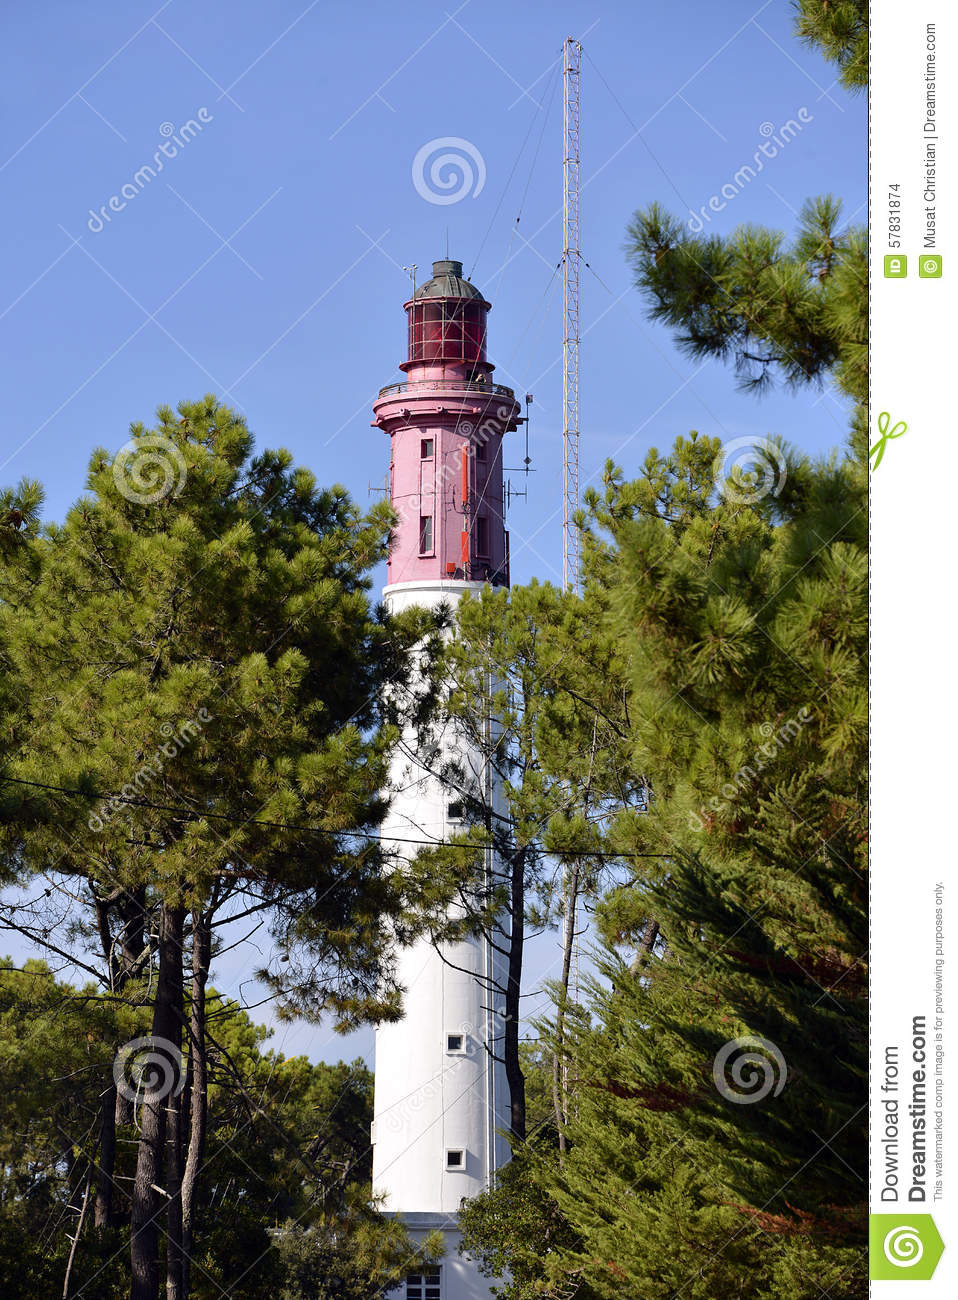 Lighthouse Of Cap-Ferret In France Stock Photo - Image: 57831874